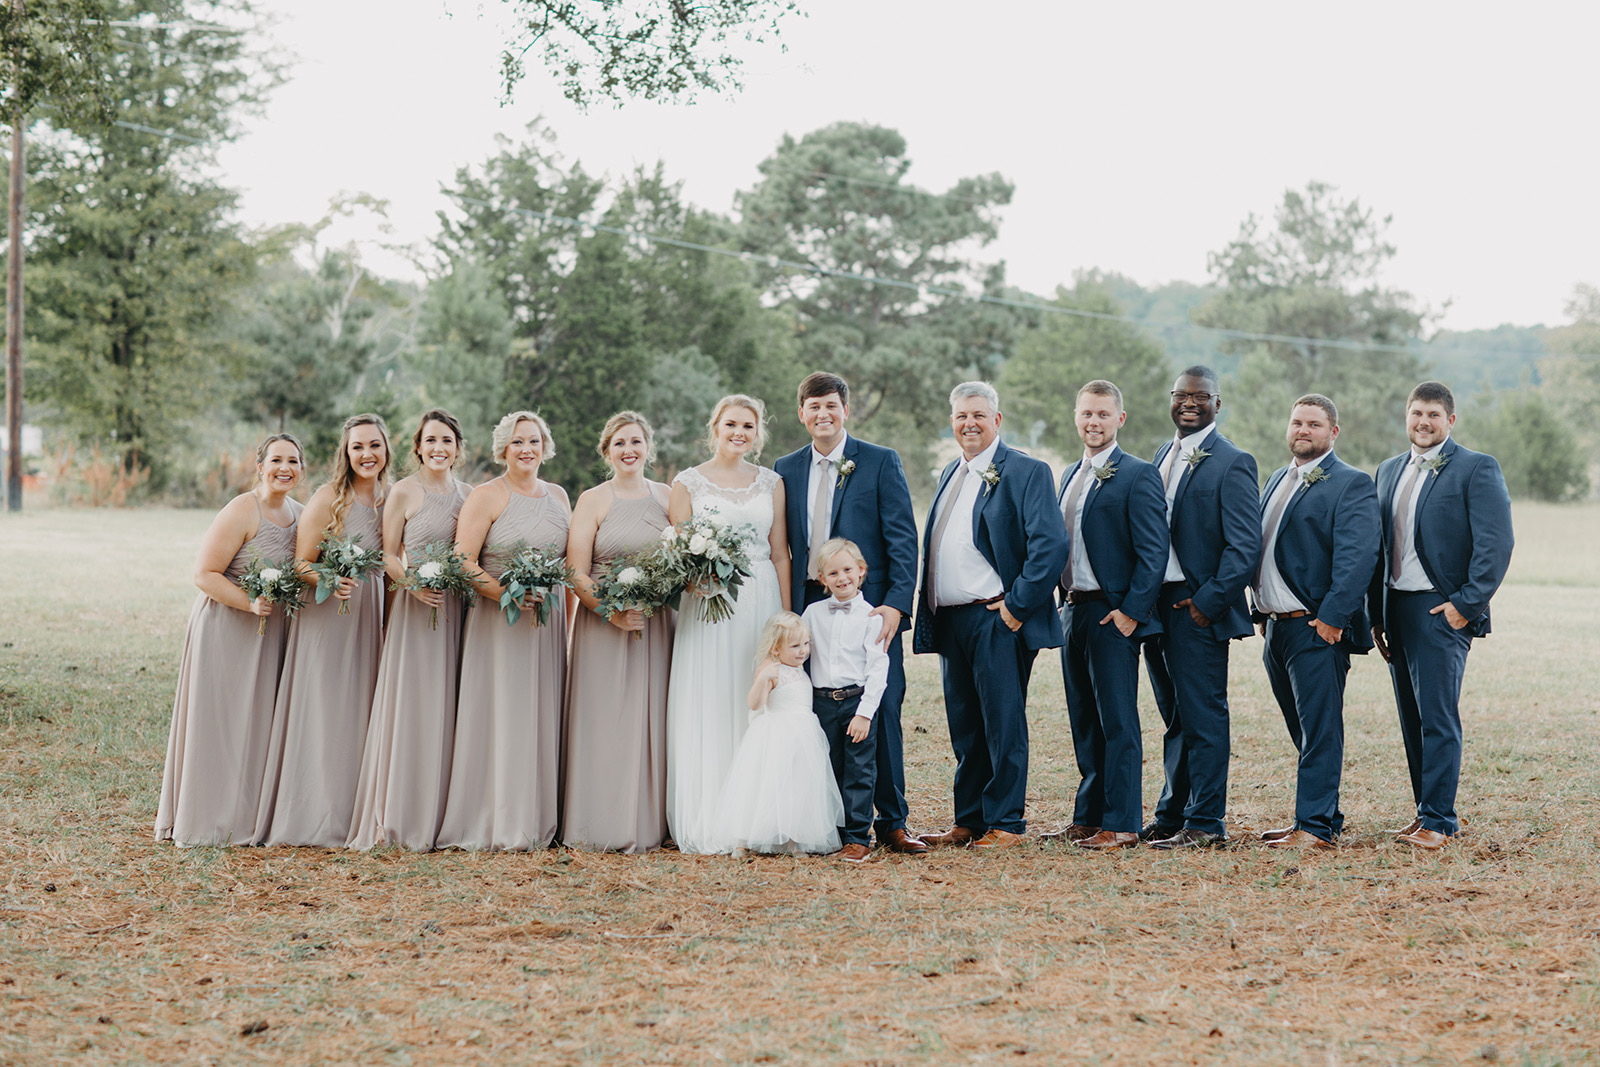 Kids at weddings can make the day a family affair. pc: Taylor Ann Photography